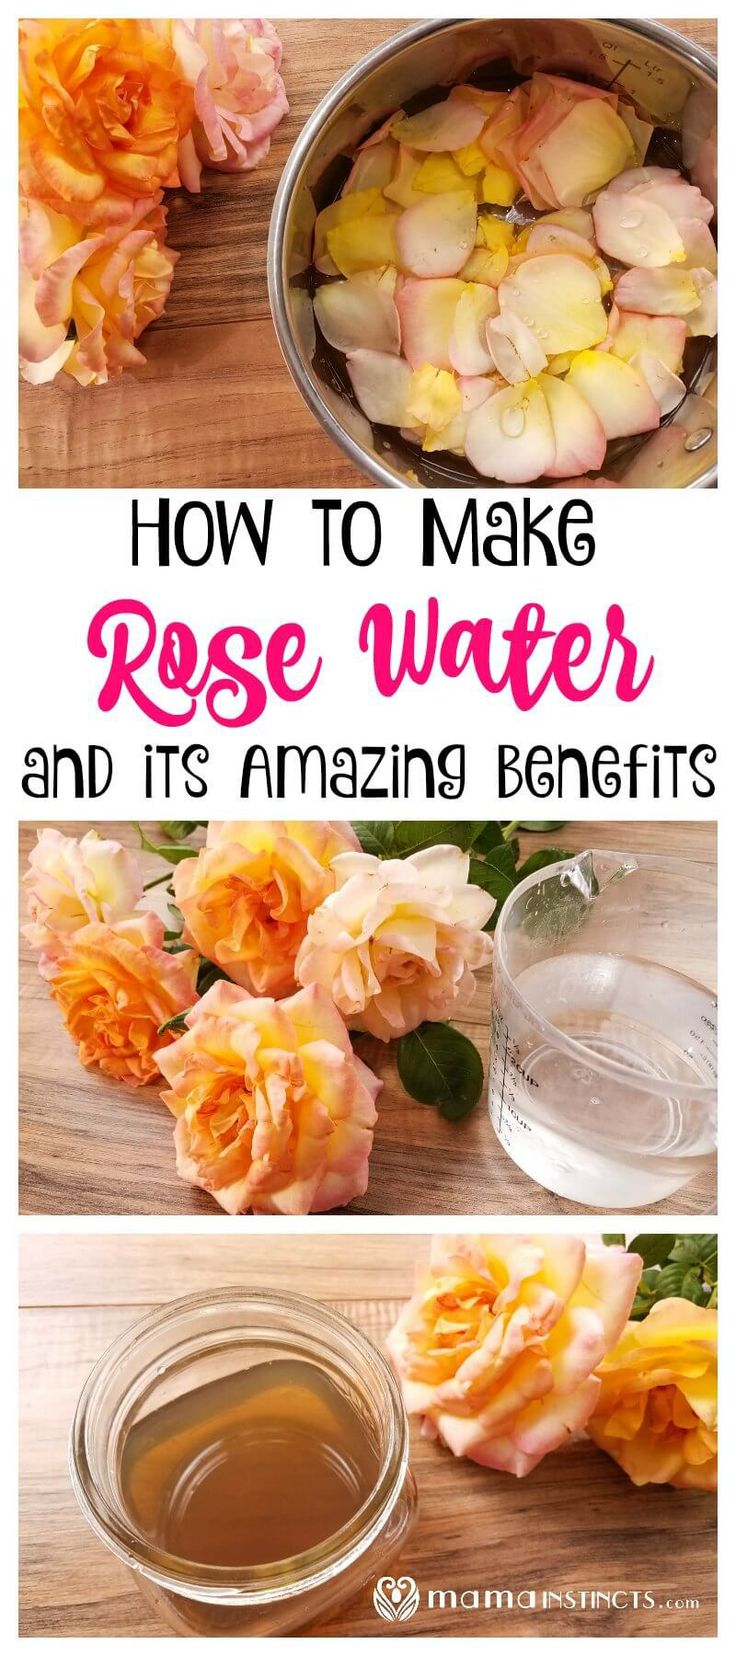 Rose water does wonders for your skin. Use this natural face toner to hydrate, nourish and stop premature aging of your face skin. This DIY rose water recipe is easy and simple to make. #DIYbeauty #MamaInstinctsBlog